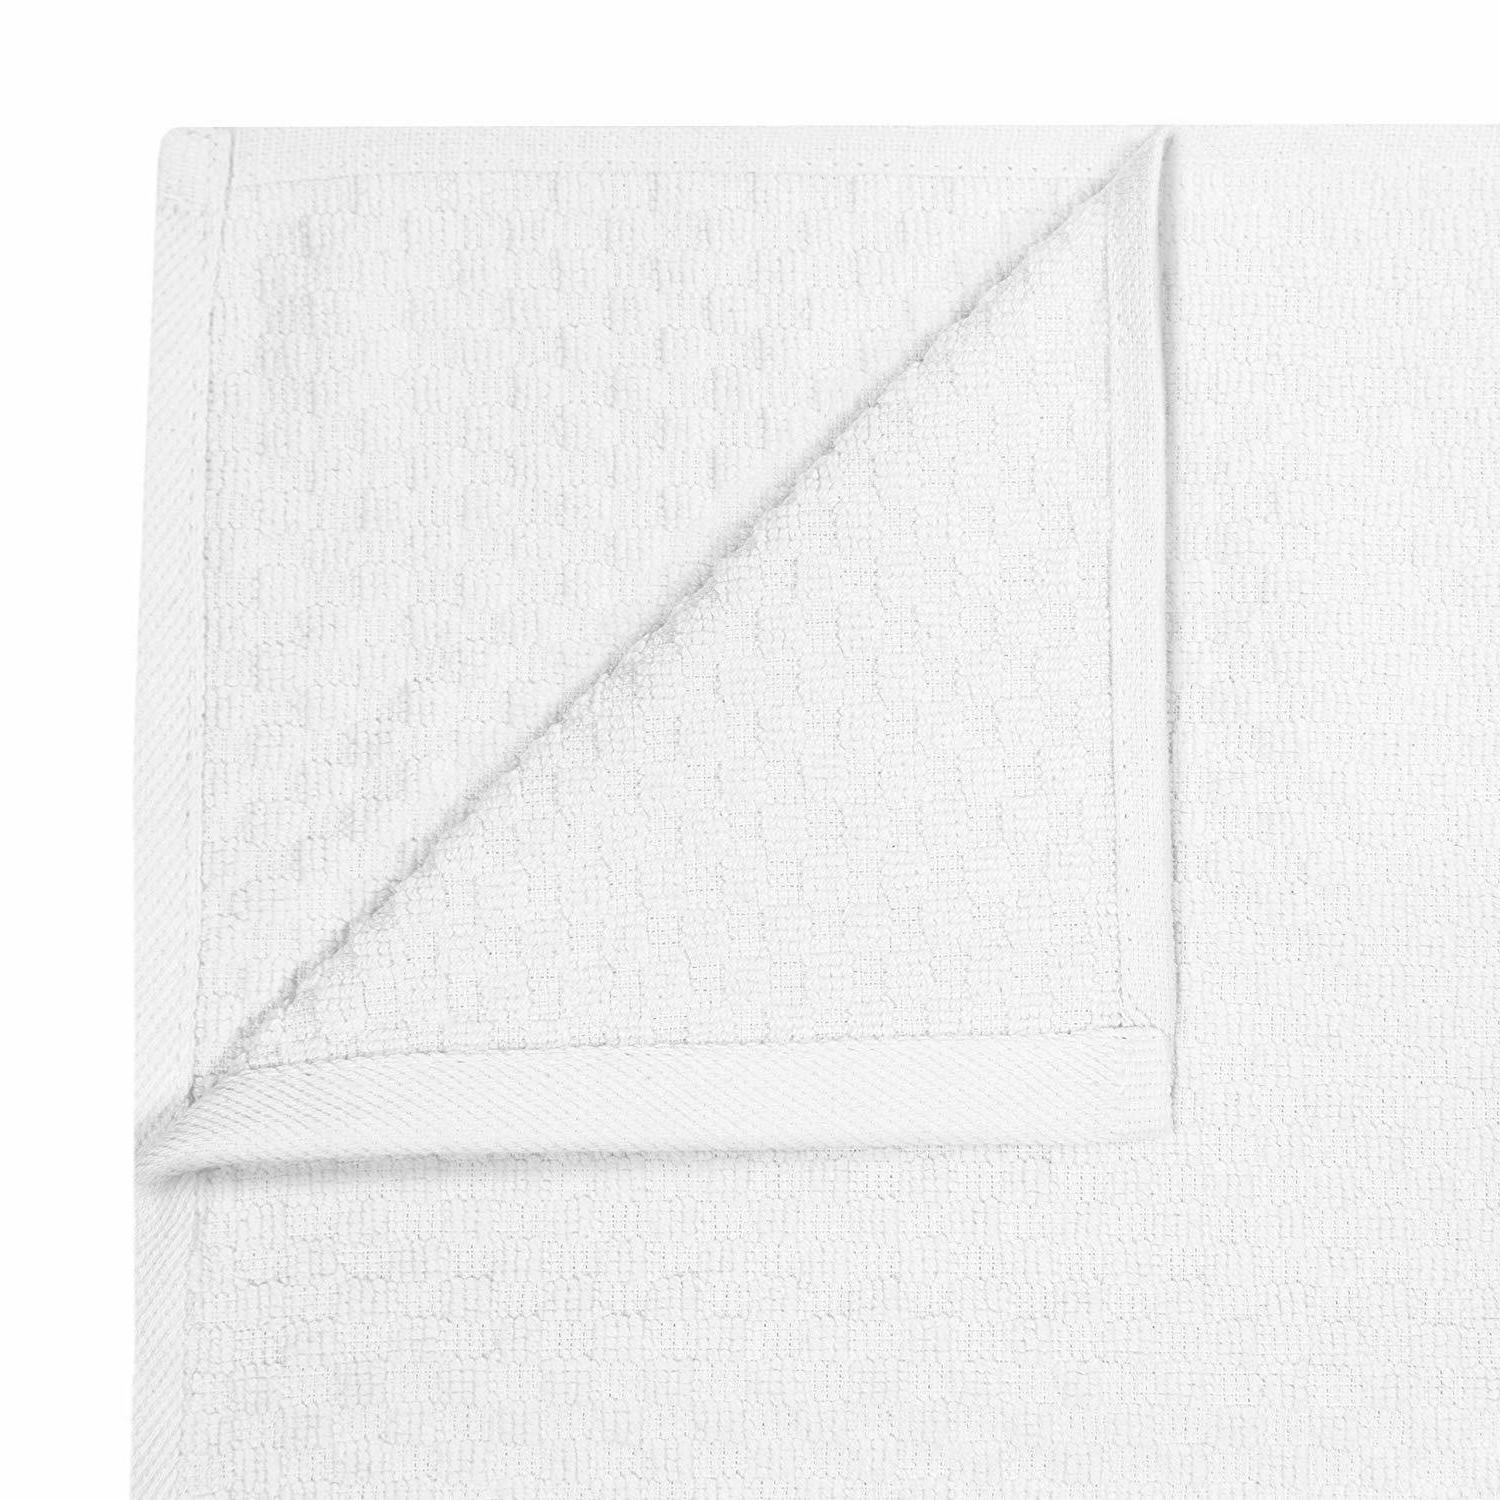 Cotton Craft - Pack Euro Waffle Weave Towels 16X28